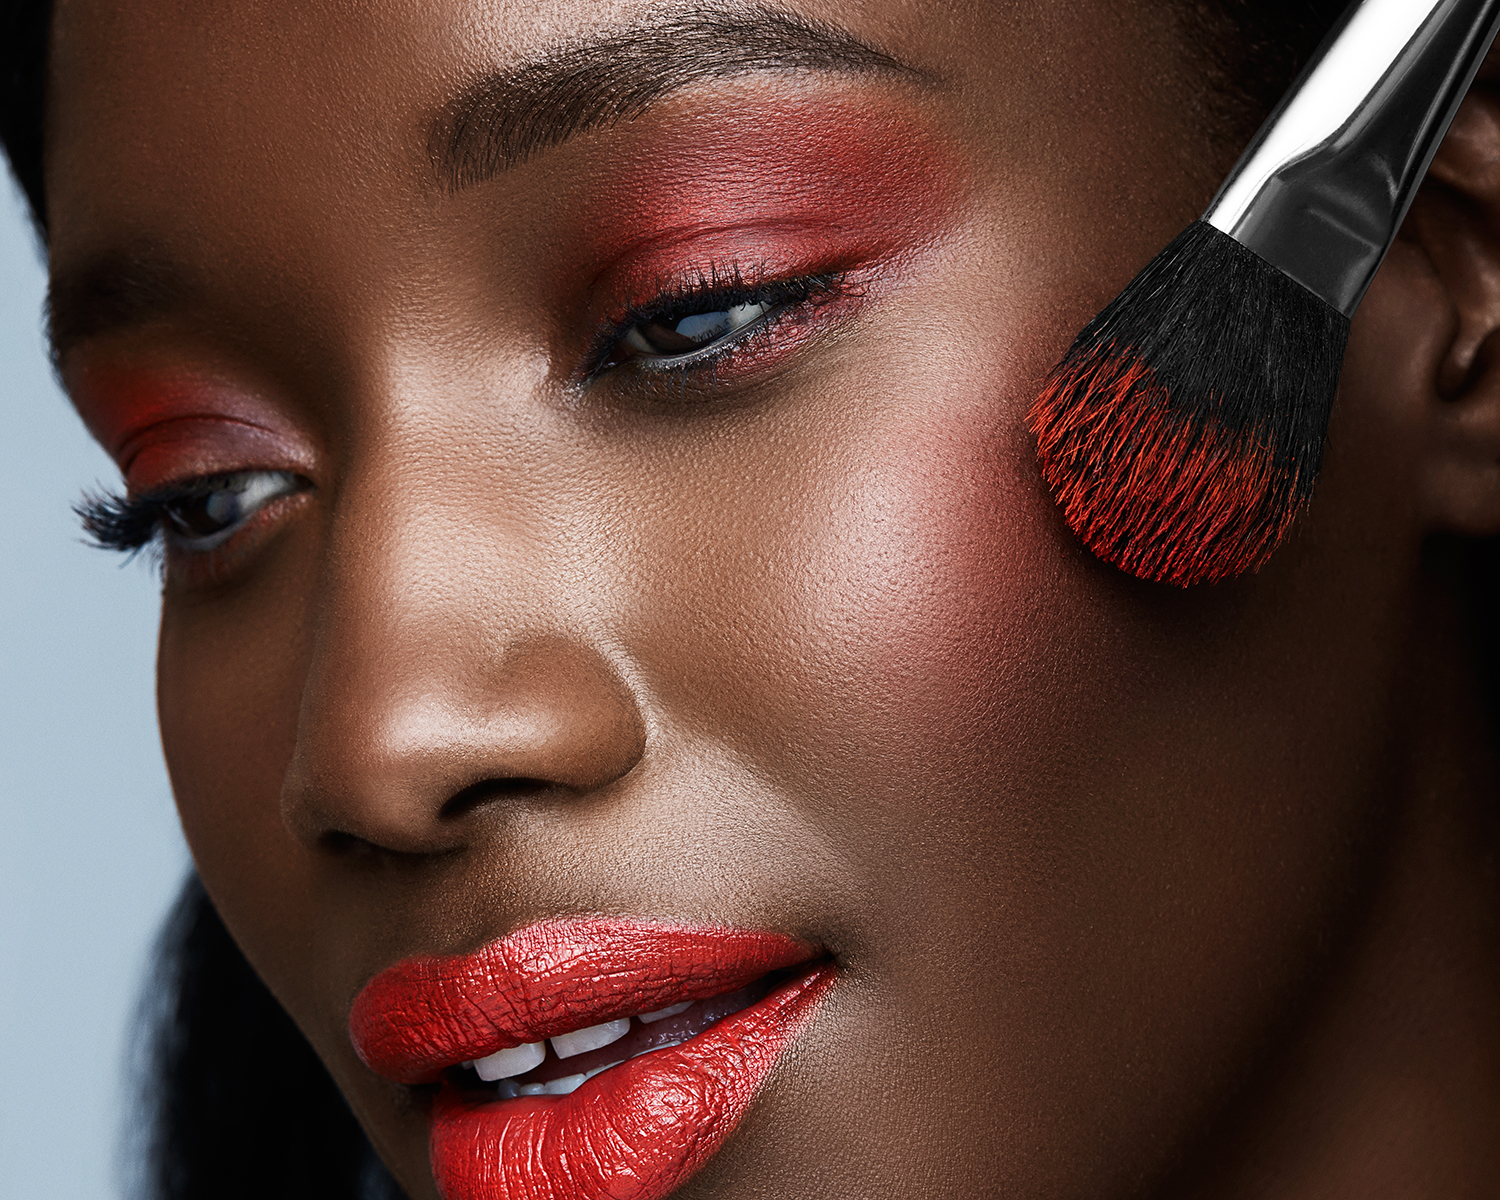 BeautyPhotographer_BeautyEditorial_By_BriJohnson_0085.jpg